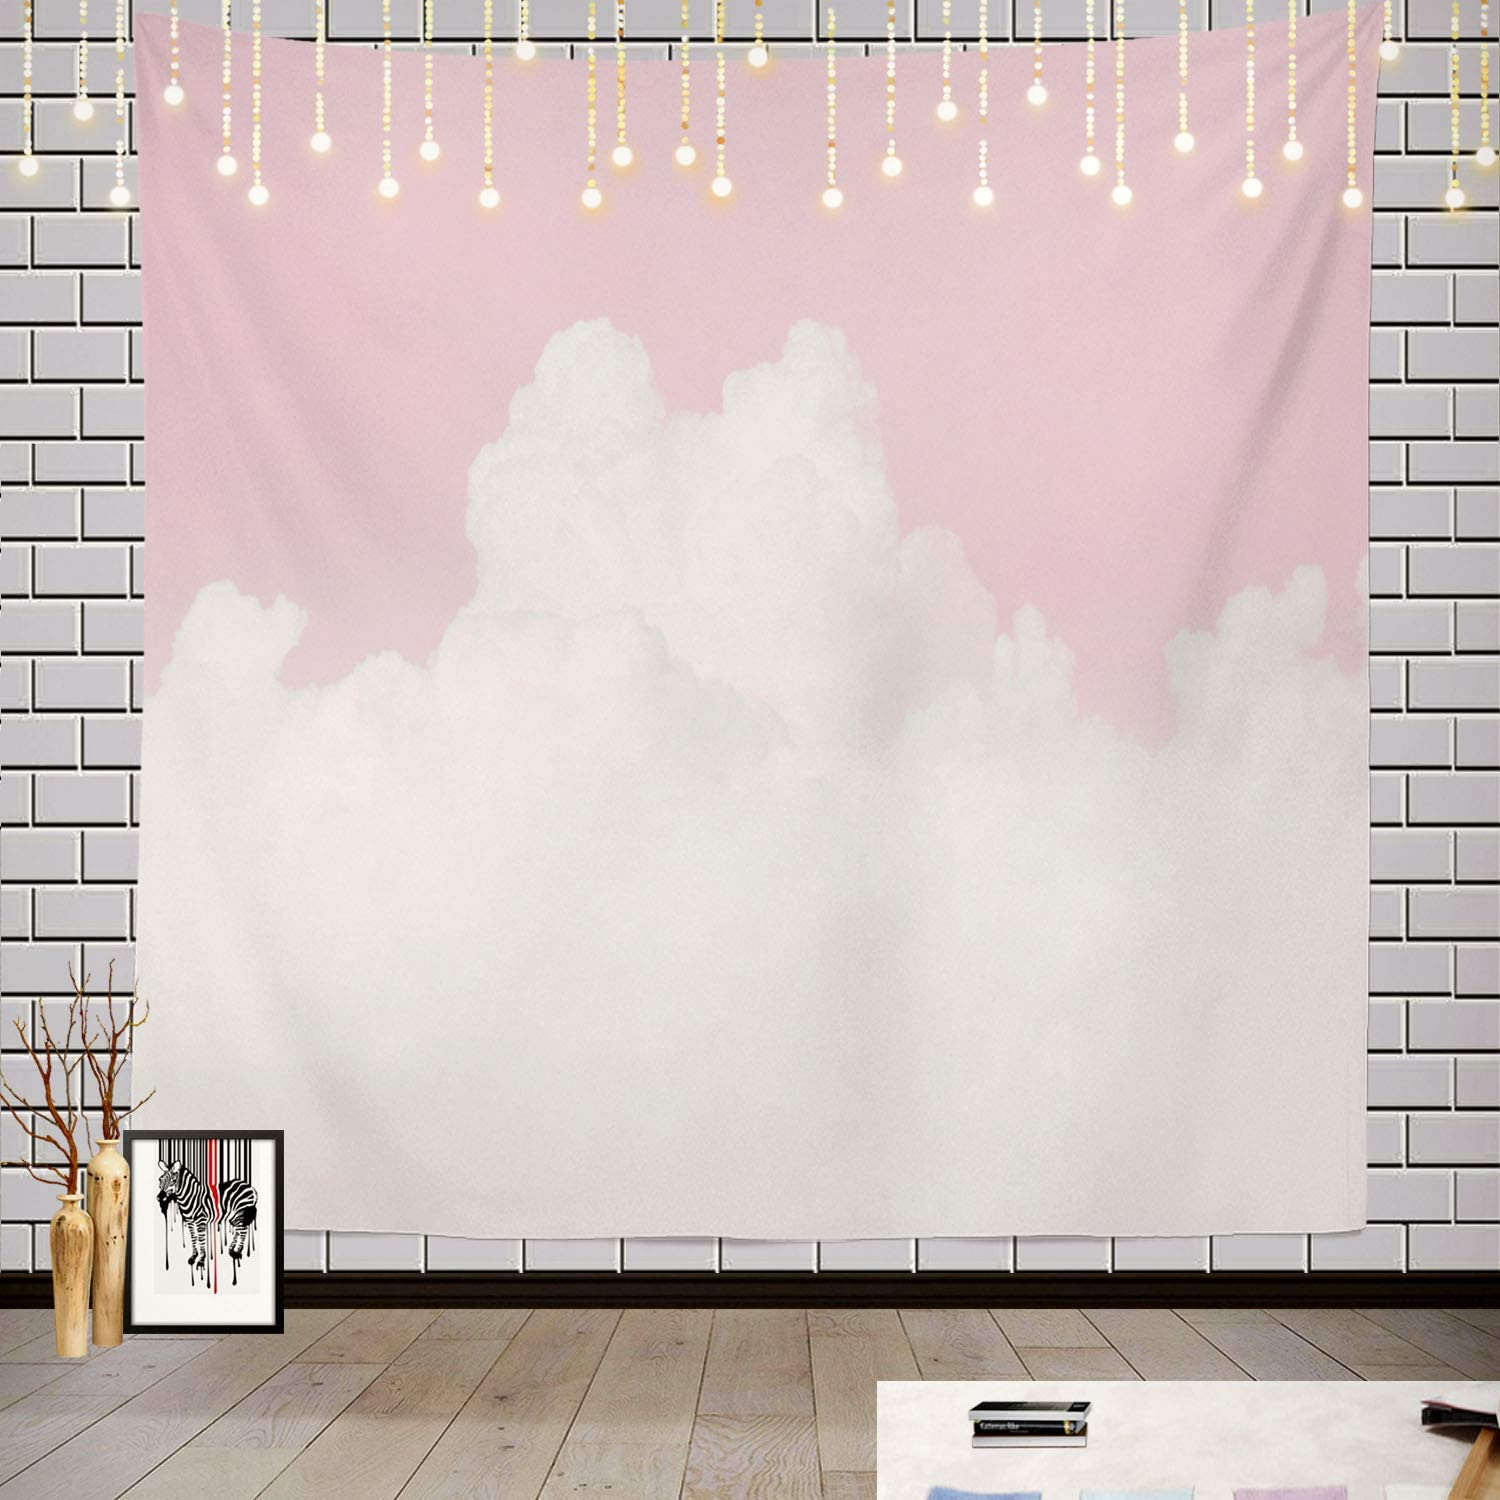 Batmerry Sky Pink Pastel Tapestry, White with Pastel Pink and Blue Love Picnic Mat Hippie Trippy Tapestry Wall Art Meditation Decor for Bedroom Living Room Dorm, 59.1 x 59.1 Inches, Soft Pink